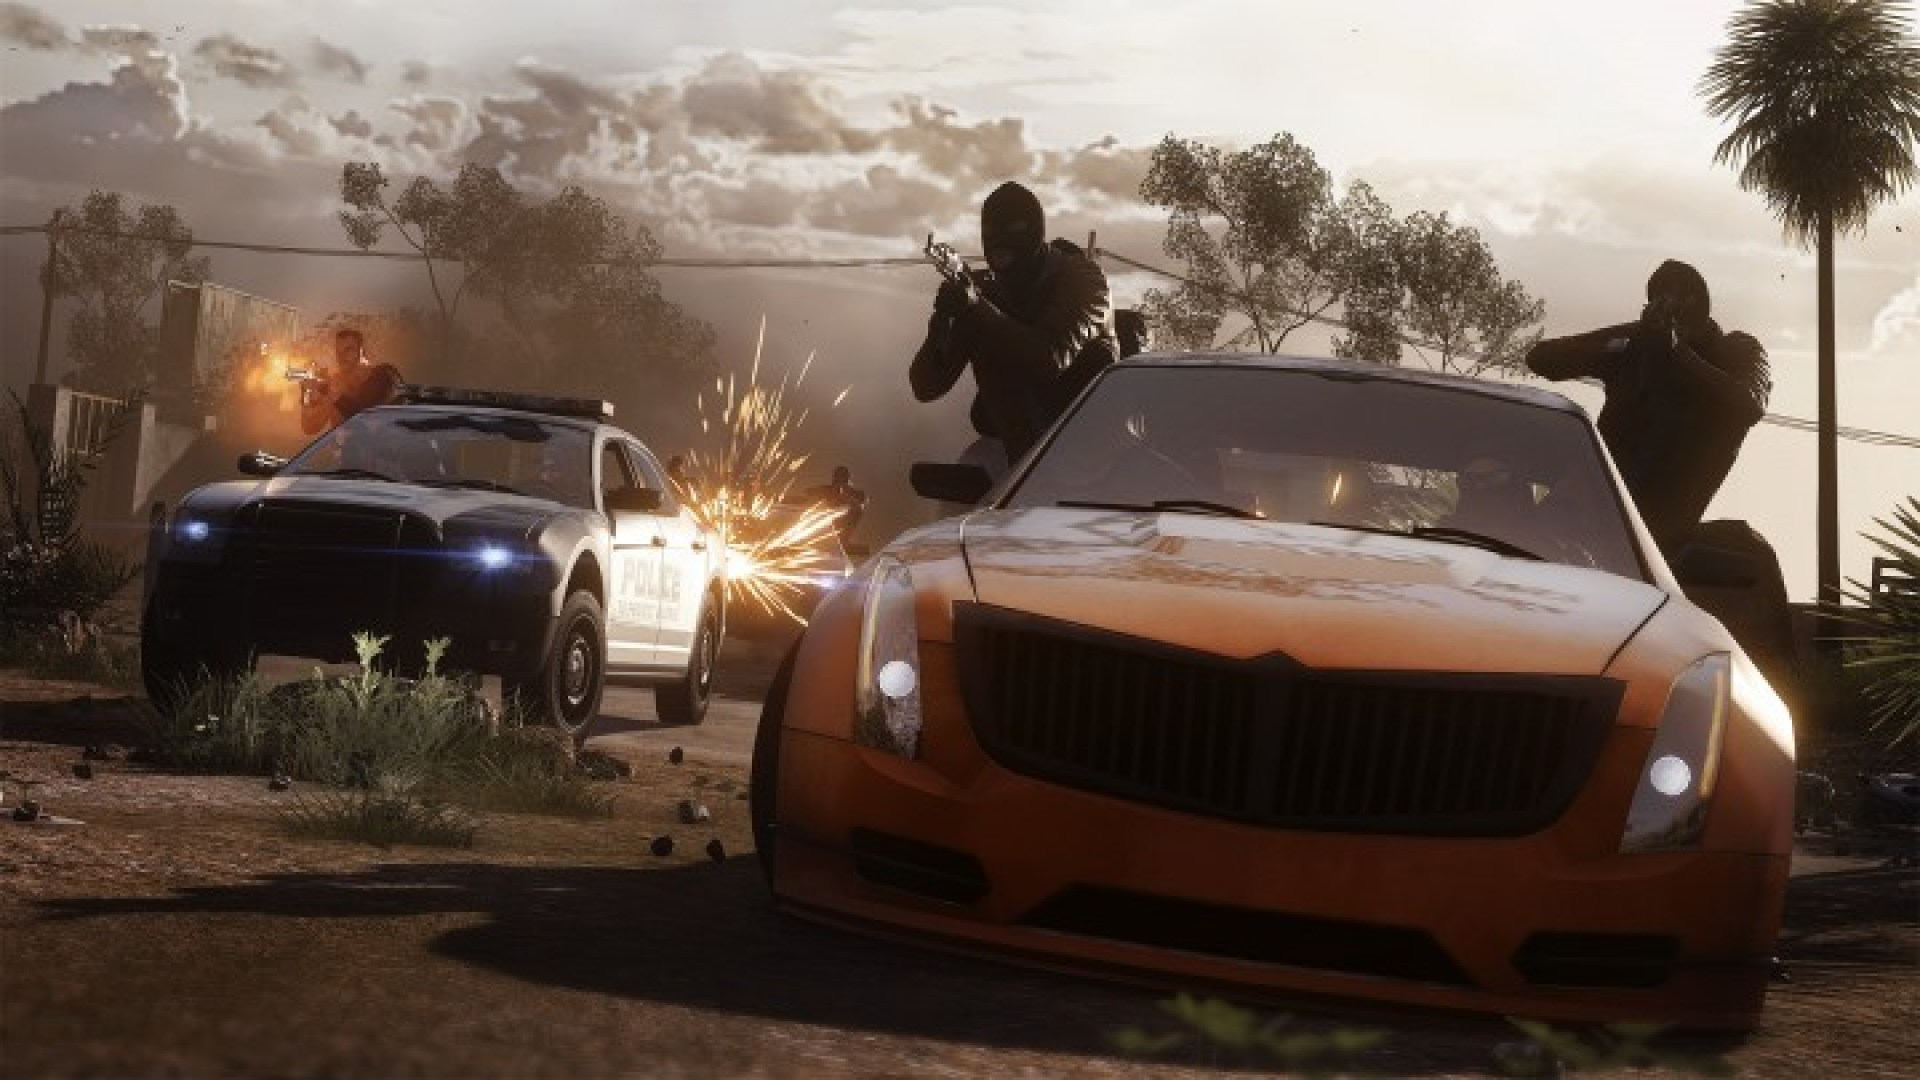 bfh_hotwire_glades_drivers